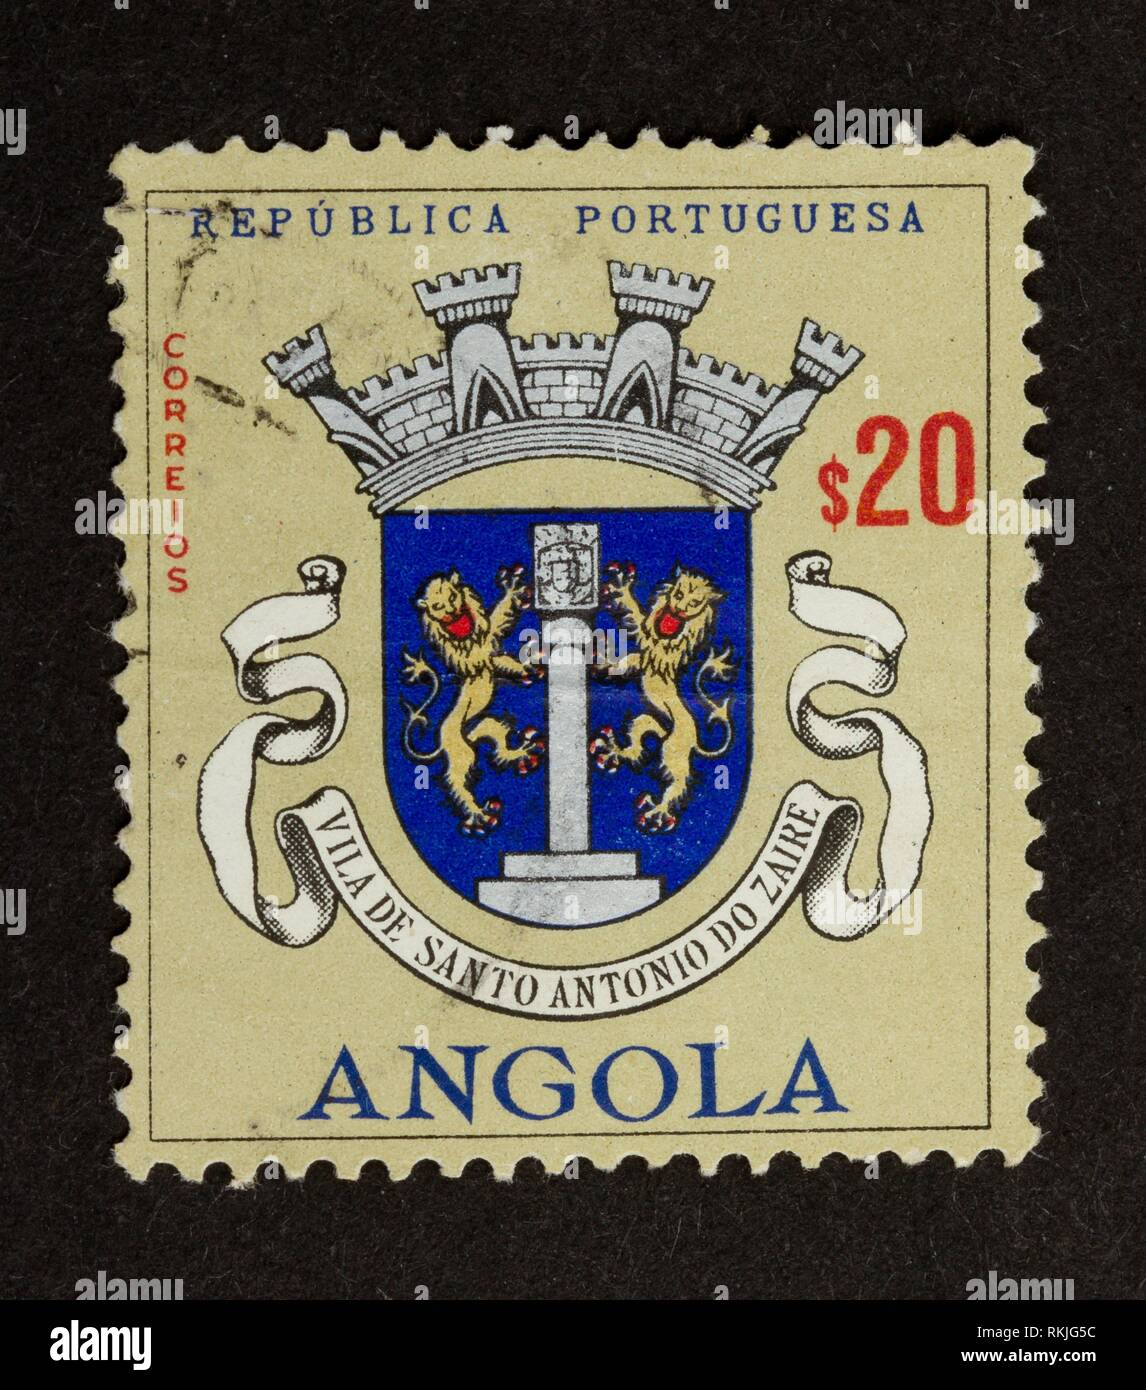 ANGOLA - CIRCA 1970: Stamp printed in Angola shows two lions on a shield, 1970. - Stock Image